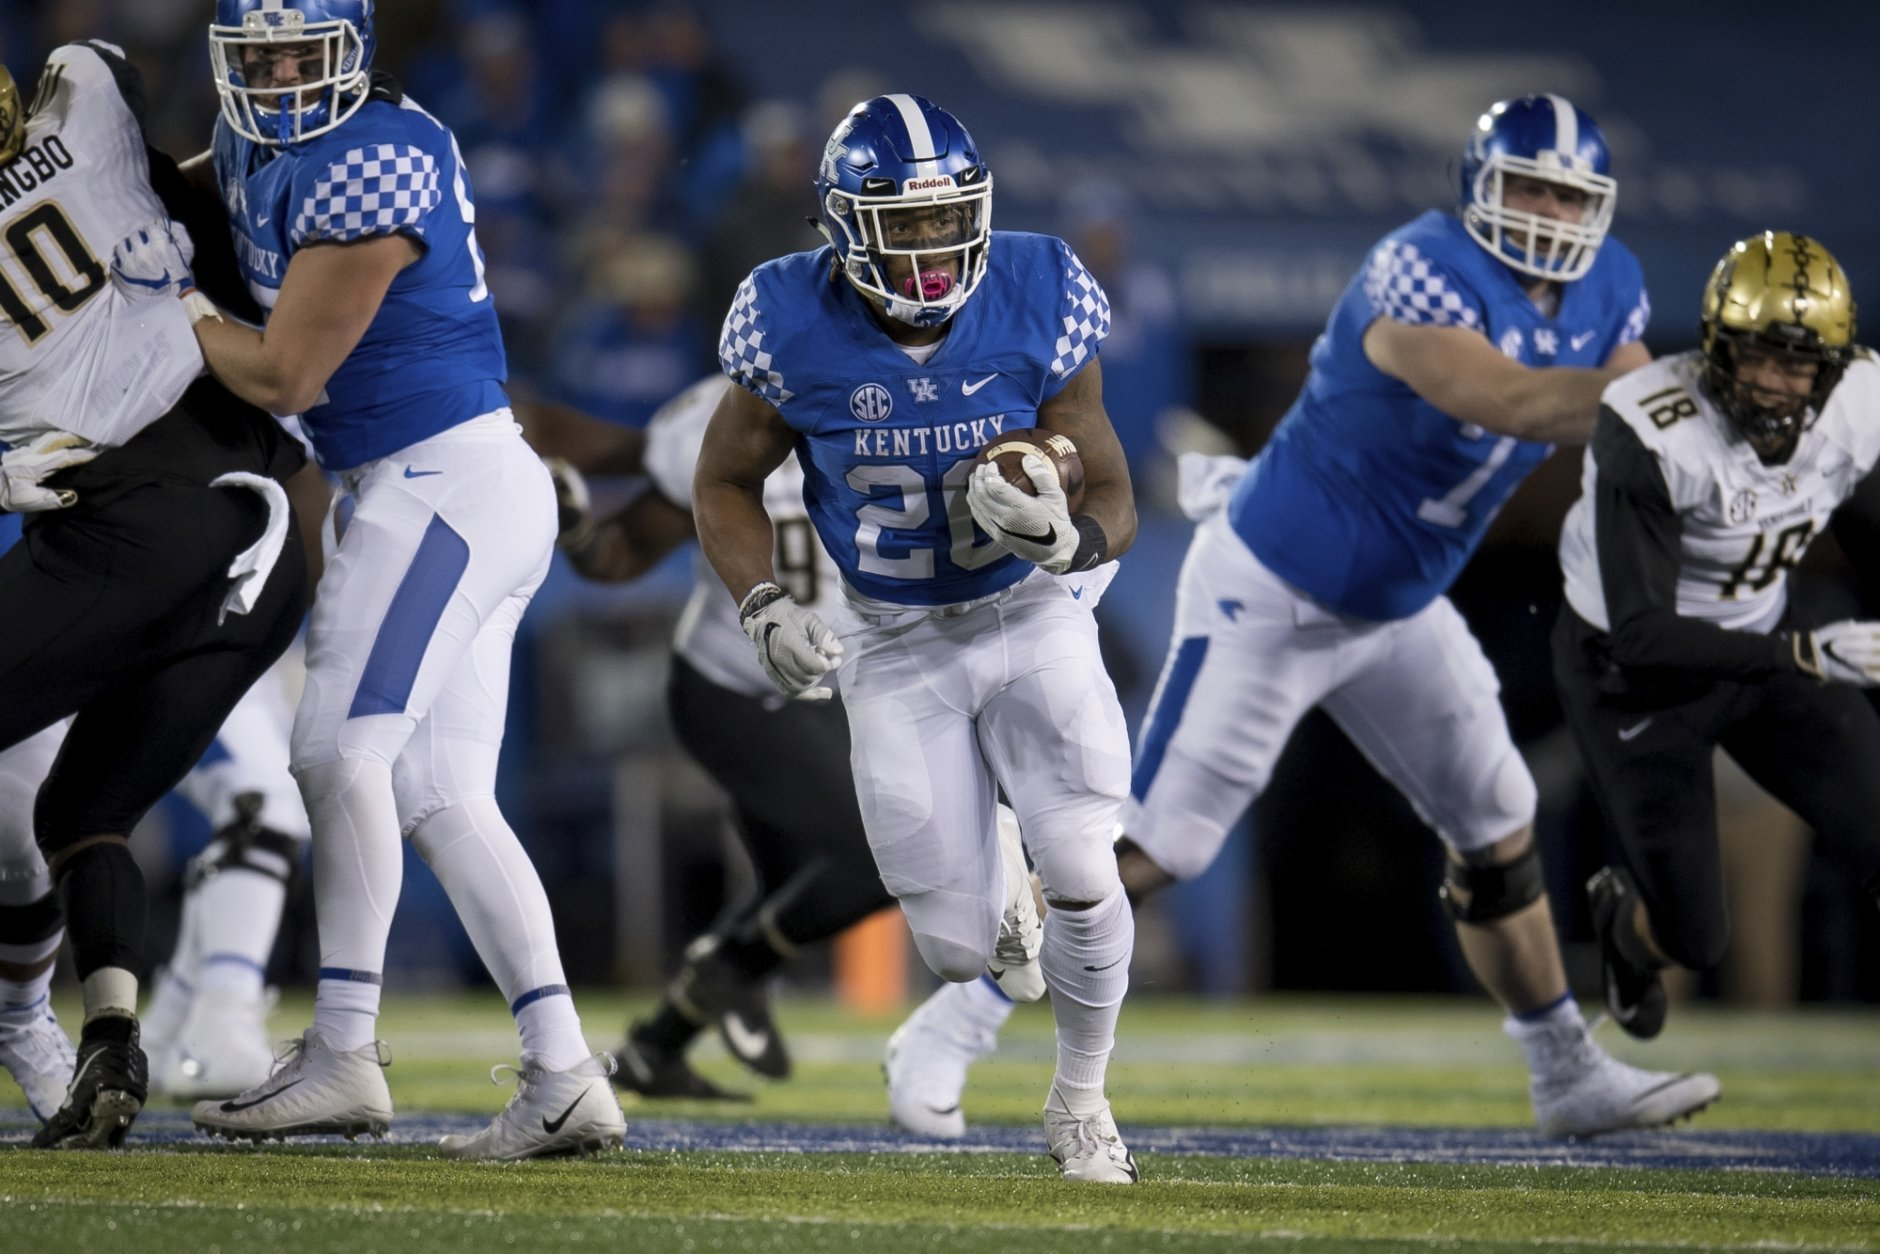 Kentucky running back Benny Snell Jr. (26) carries the ball during the second half of an NCAA college football game against Vanderbilt in Lexington, Ky., Saturday, Oct. 20, 2018. (AP Photo/Bryan Woolston)